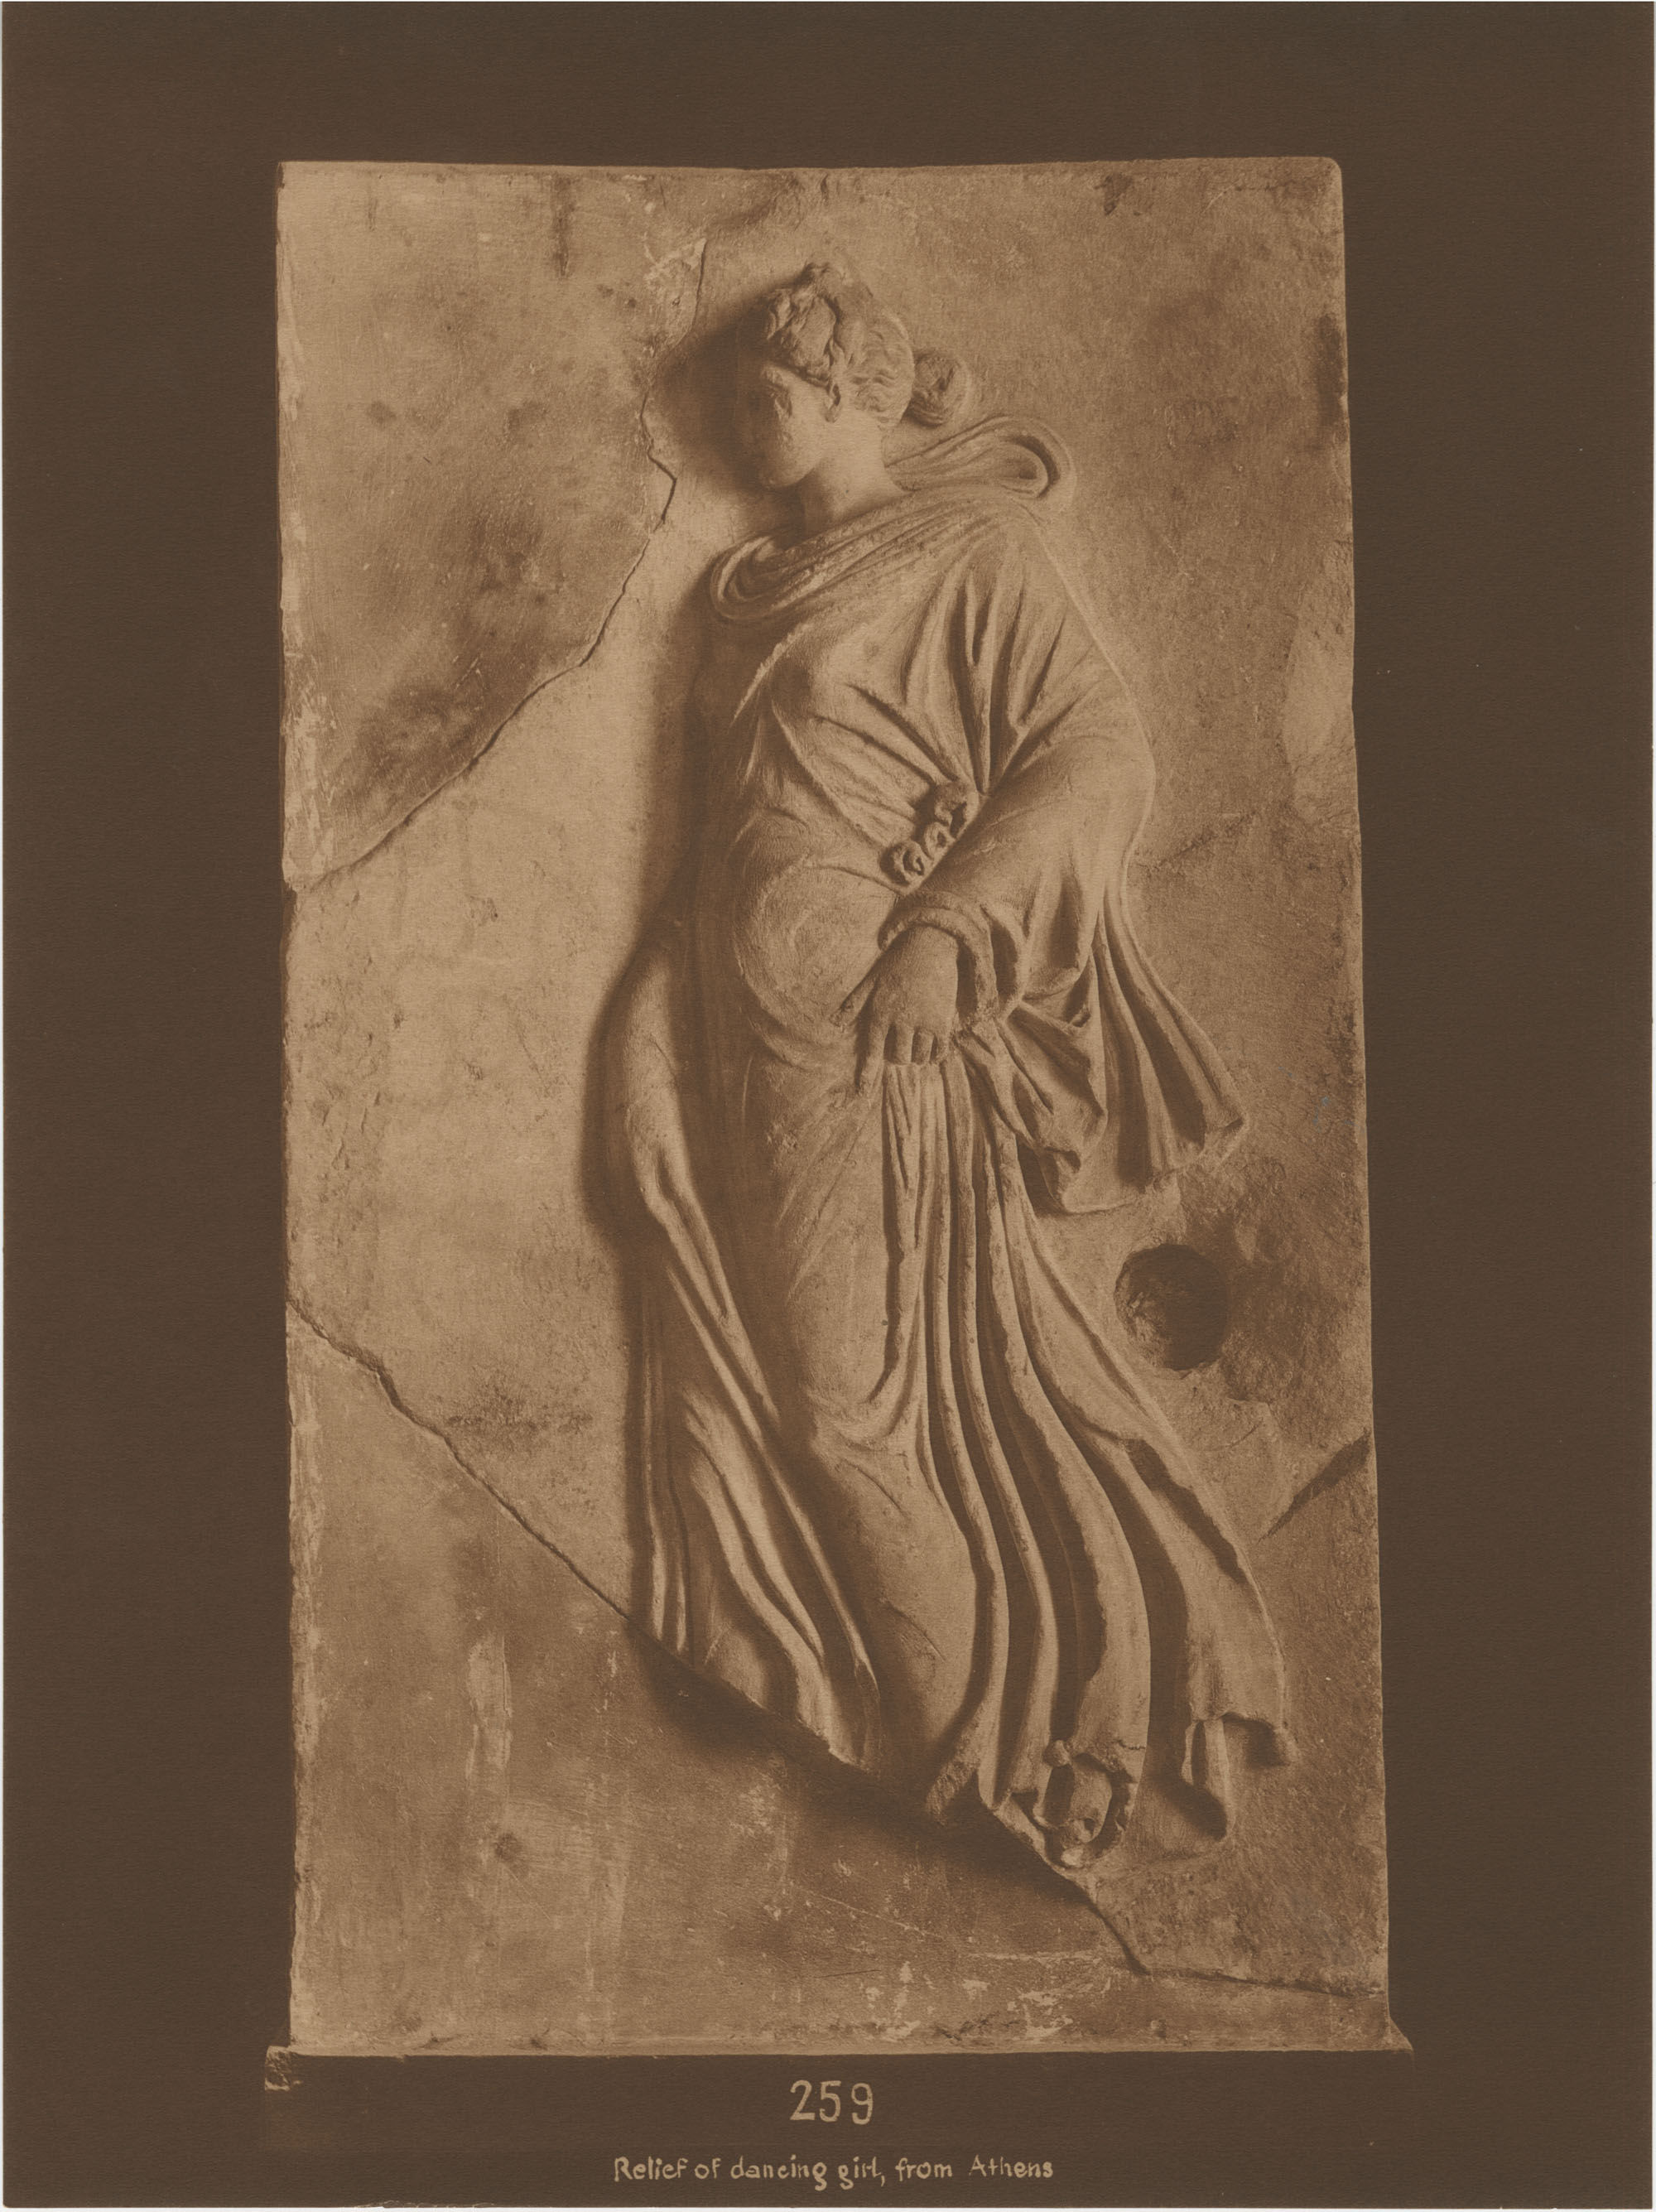 Sculpture from Athens, Greece, Photograph 11